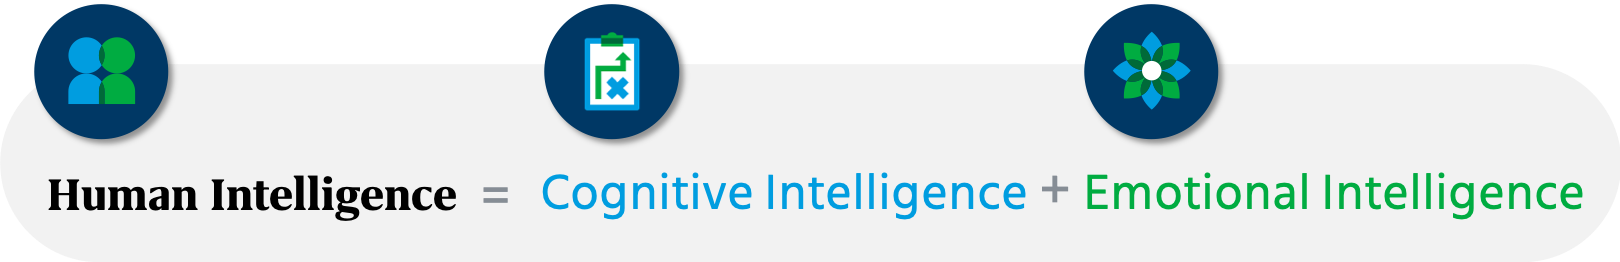 Aptitude tests help measure the cognitive part of human intelligence